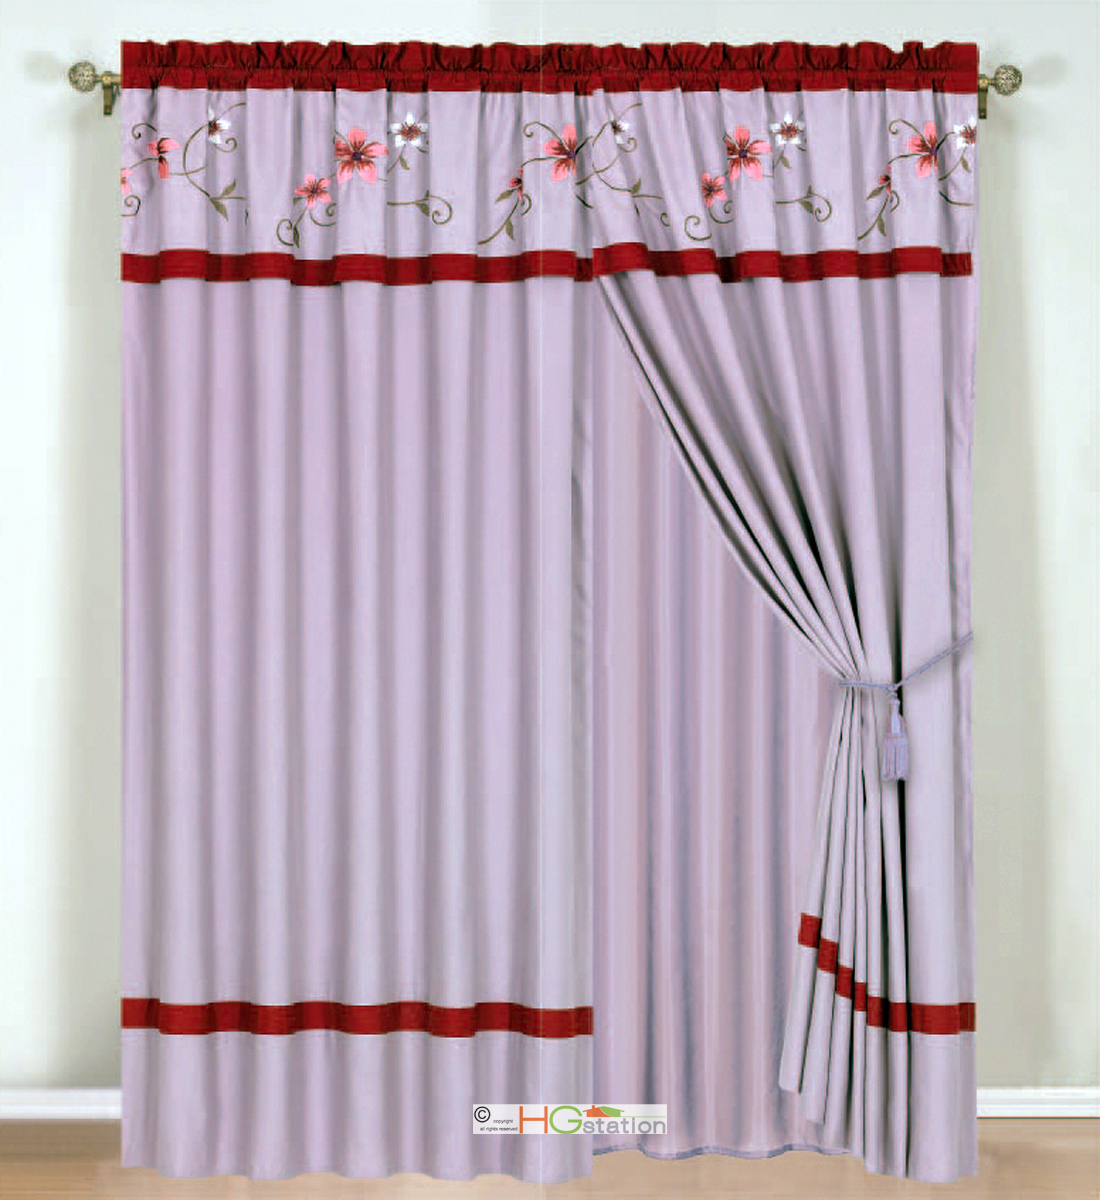 4Pc Periwrinkle Floral Embroidery Curtain Set Lilac